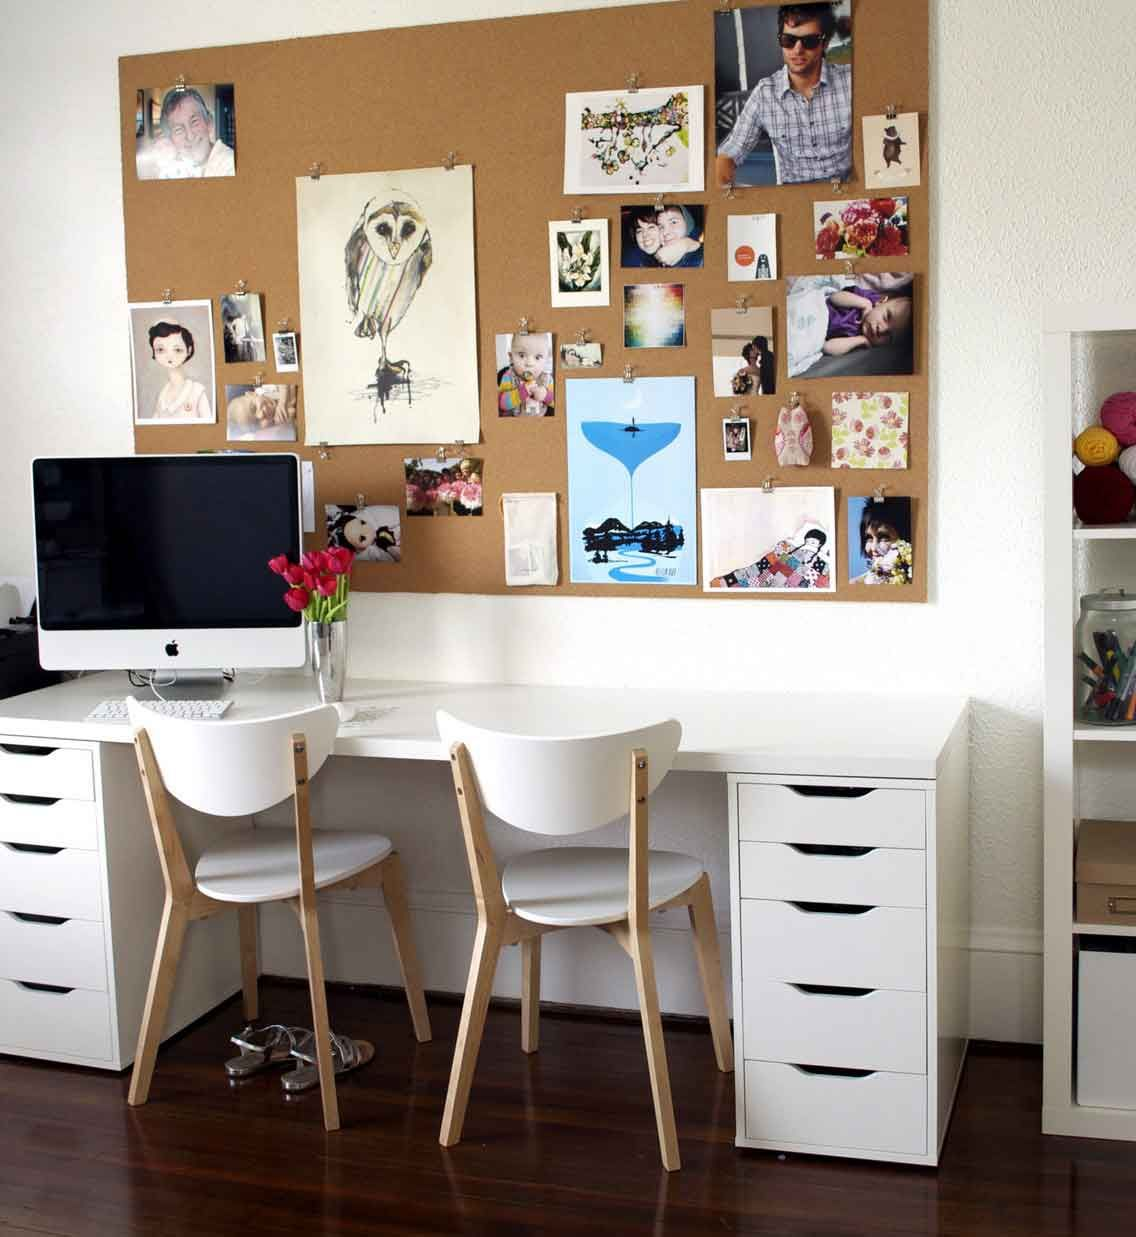 Canvas Of Get A Sophisticated Centerpiece In Your Home Office By Presenting Cool Cork Boards Ideas